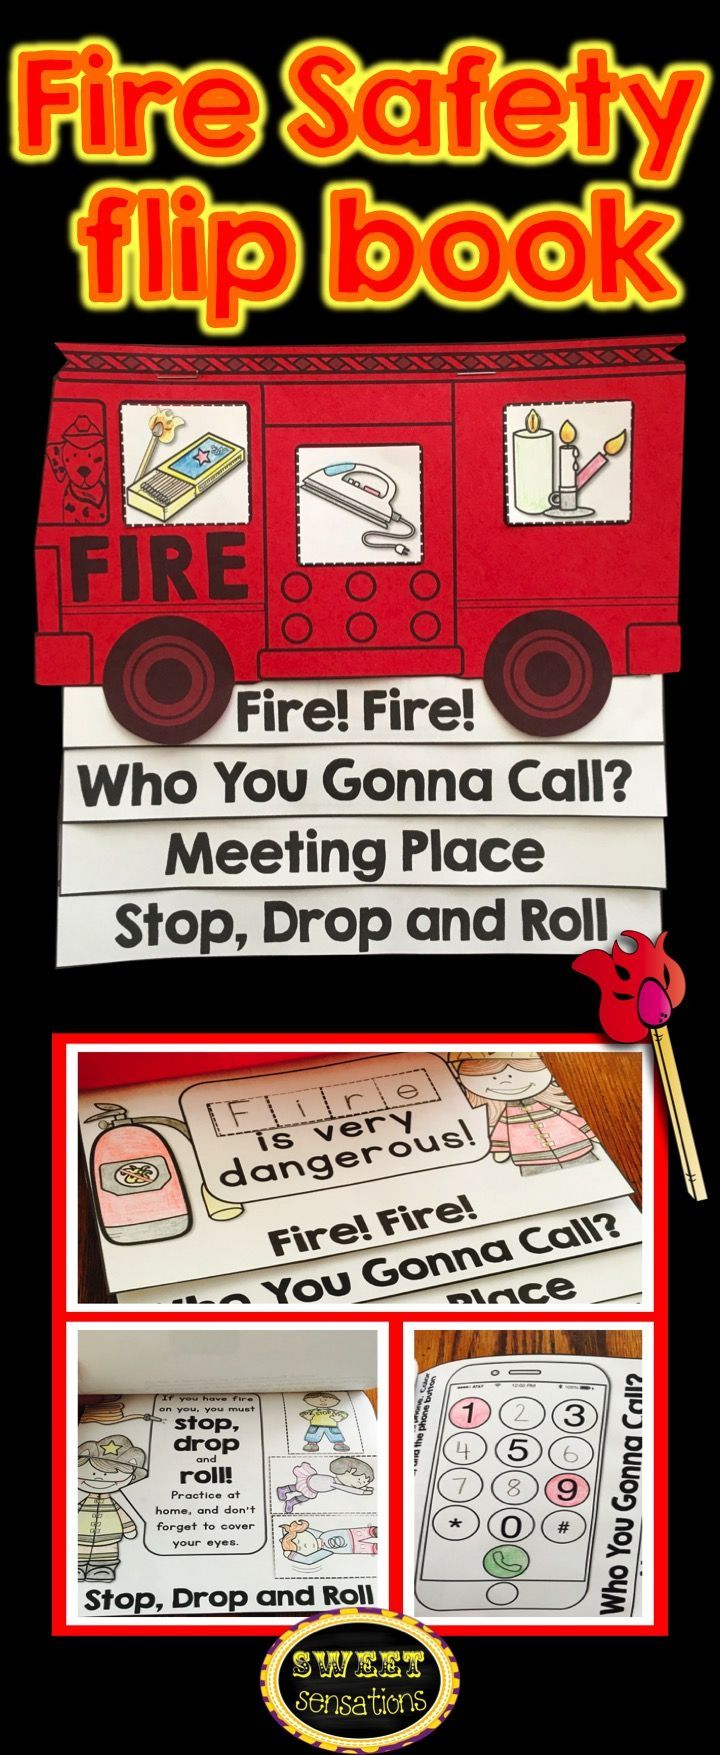 Fire Safety book #911craftsfortoddlers